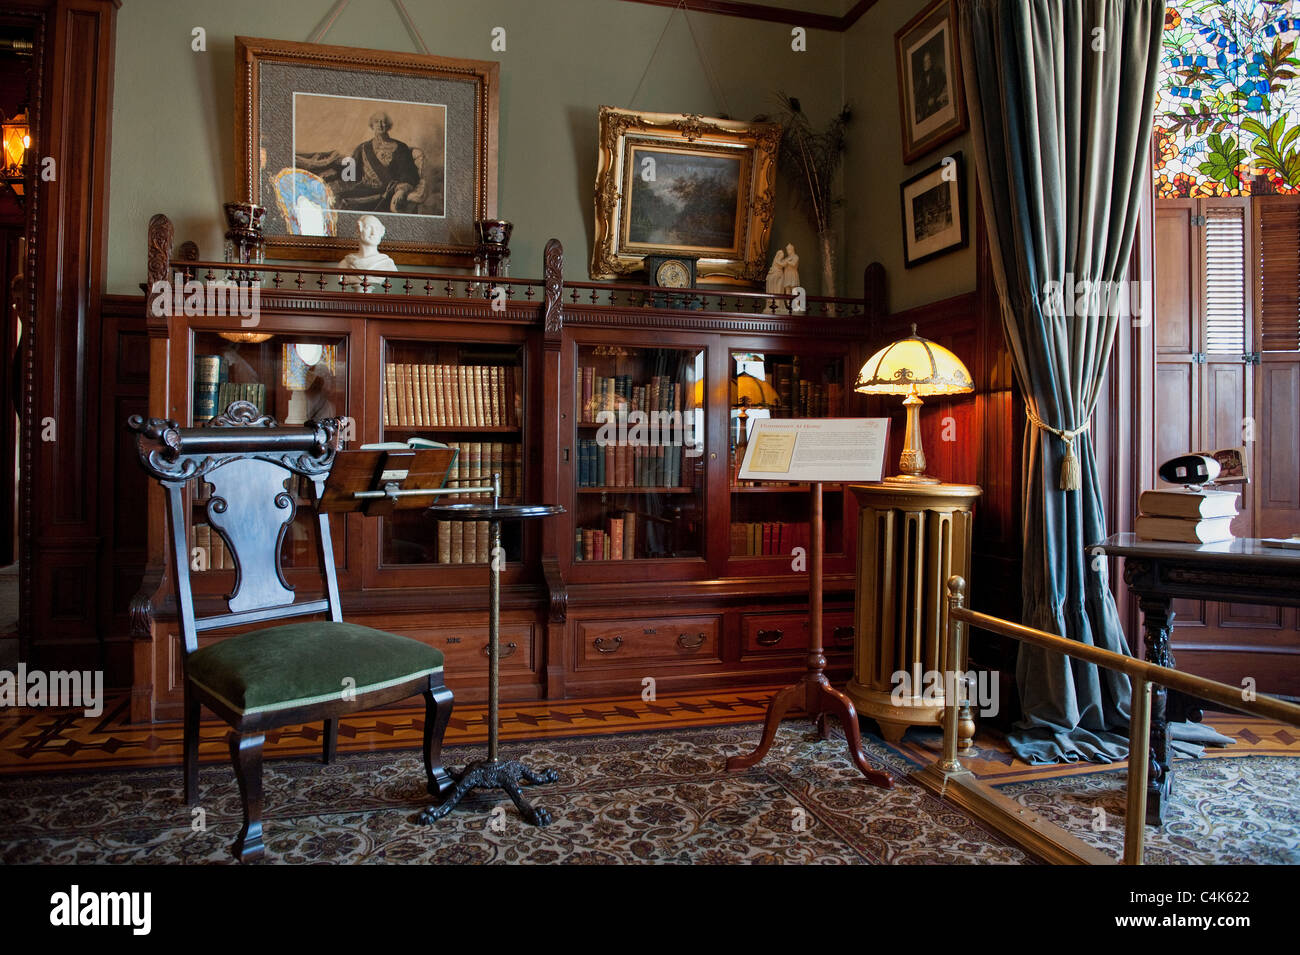 The Interiors Of Craigdarroch Castle In Victoria British Columbia Stock Photo Alamy